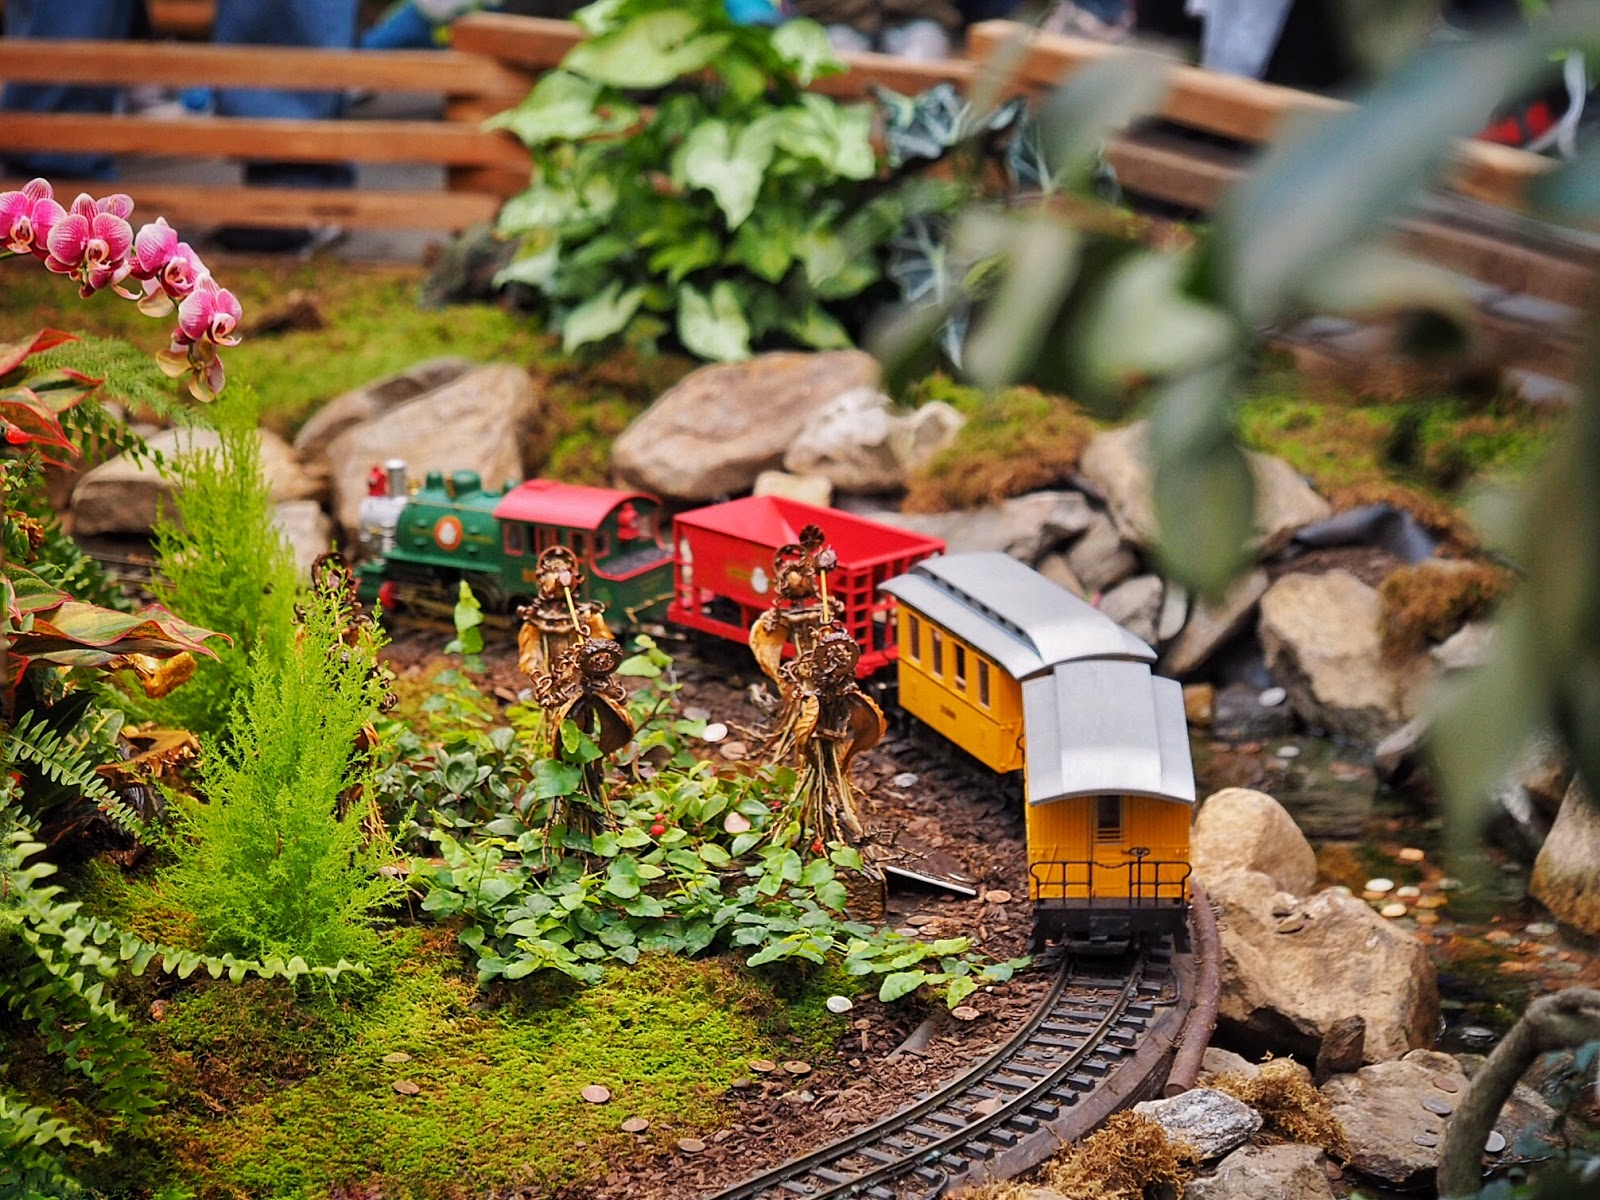 ... The Magnificent Train Show And New York City In Miniature Is Landscape  Architect Paul Busse, Who Was First Approached In 1992 By The Botanical  Garden To ...